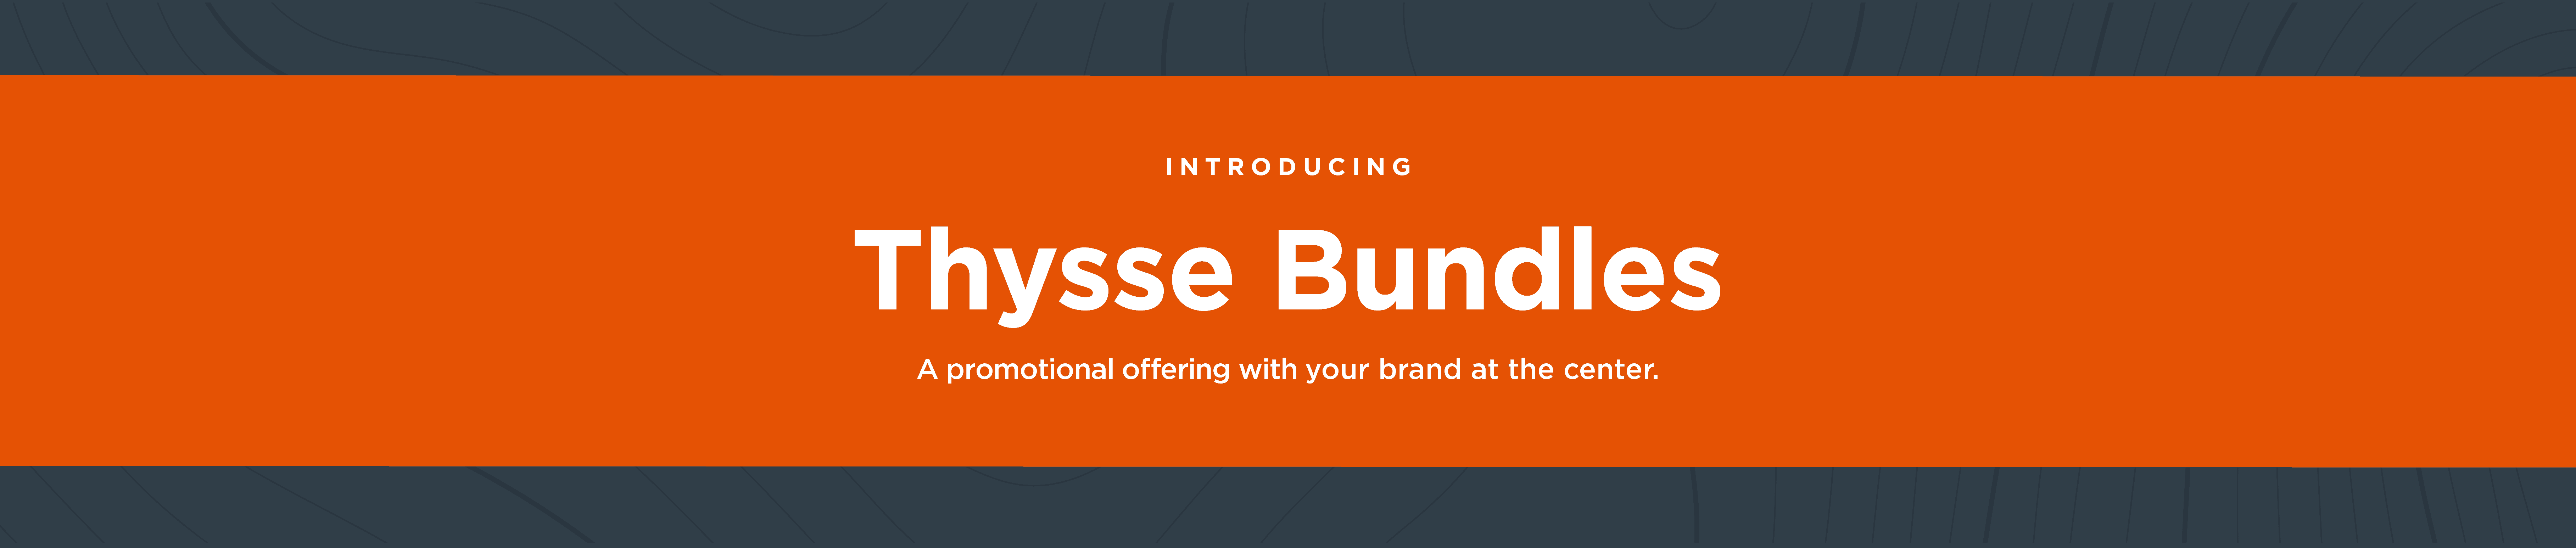 Introducing Thysse Bundles :A promotional offering with your brand at the center.